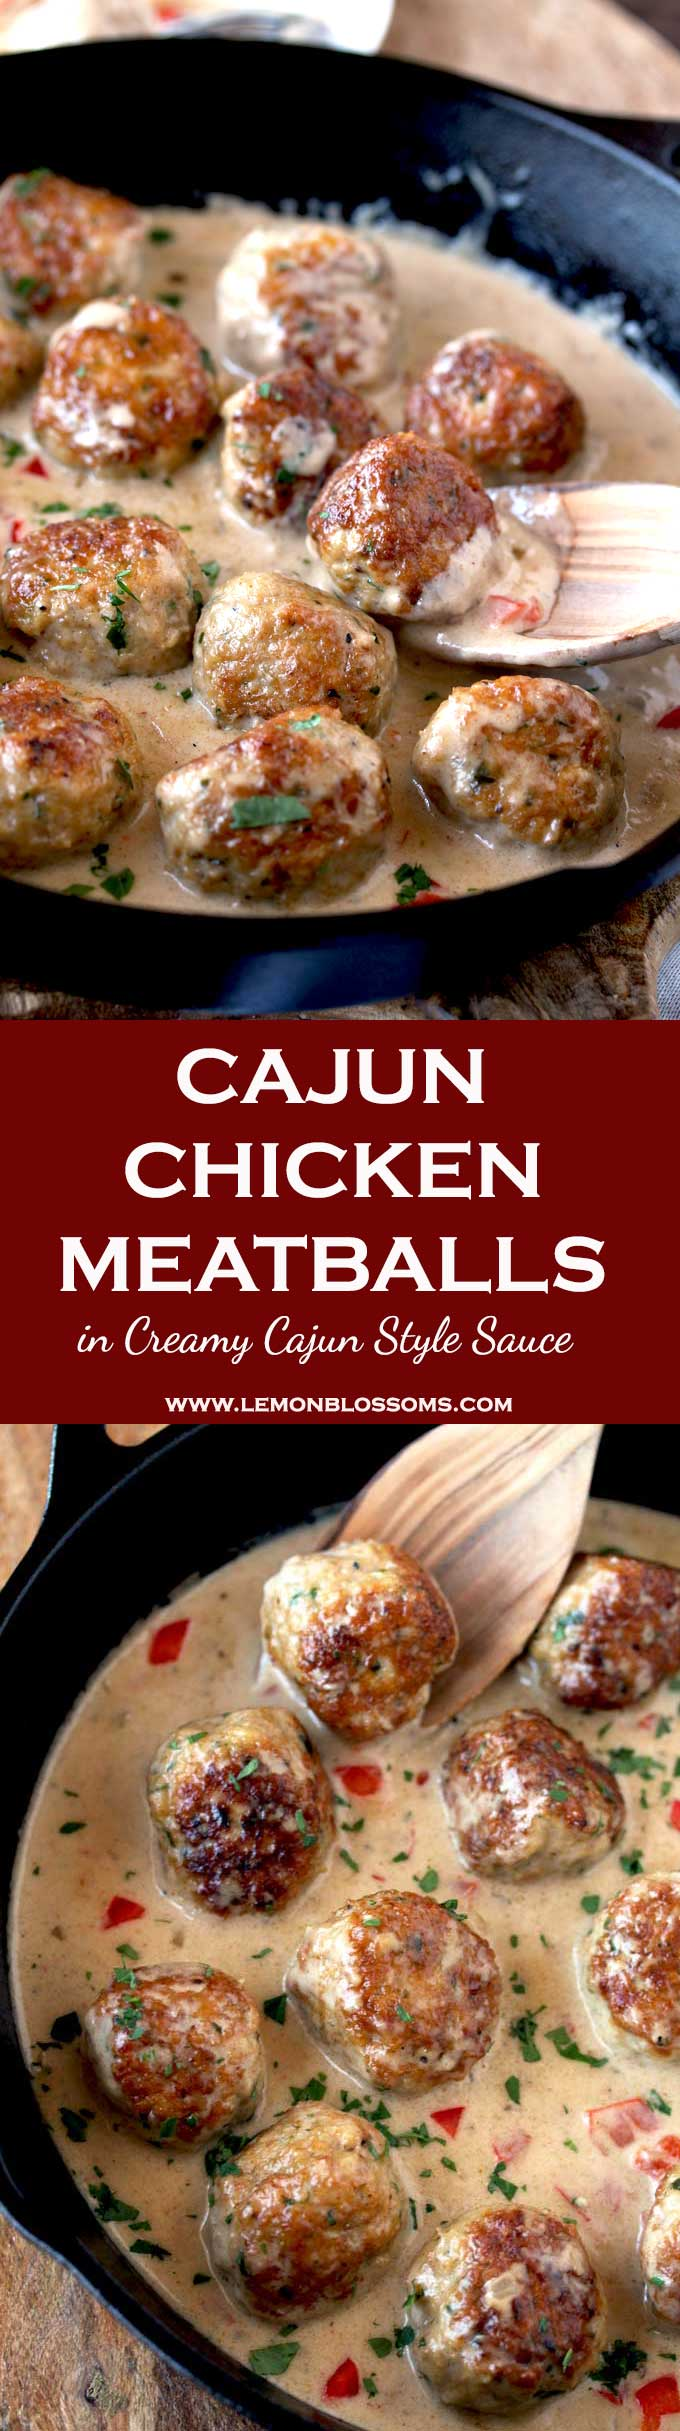 These Cajun Chicken Meatballs are tender, juicy and packed with flavor. Perfectly golden brown and smothered in a rich and creamy Cajun sauce. Serve them over pasta, rice or with some toasty bread.This one-pot meal will become a family favorite! #Cajun #meatballs #chicken #recipe #dinner #appetizer